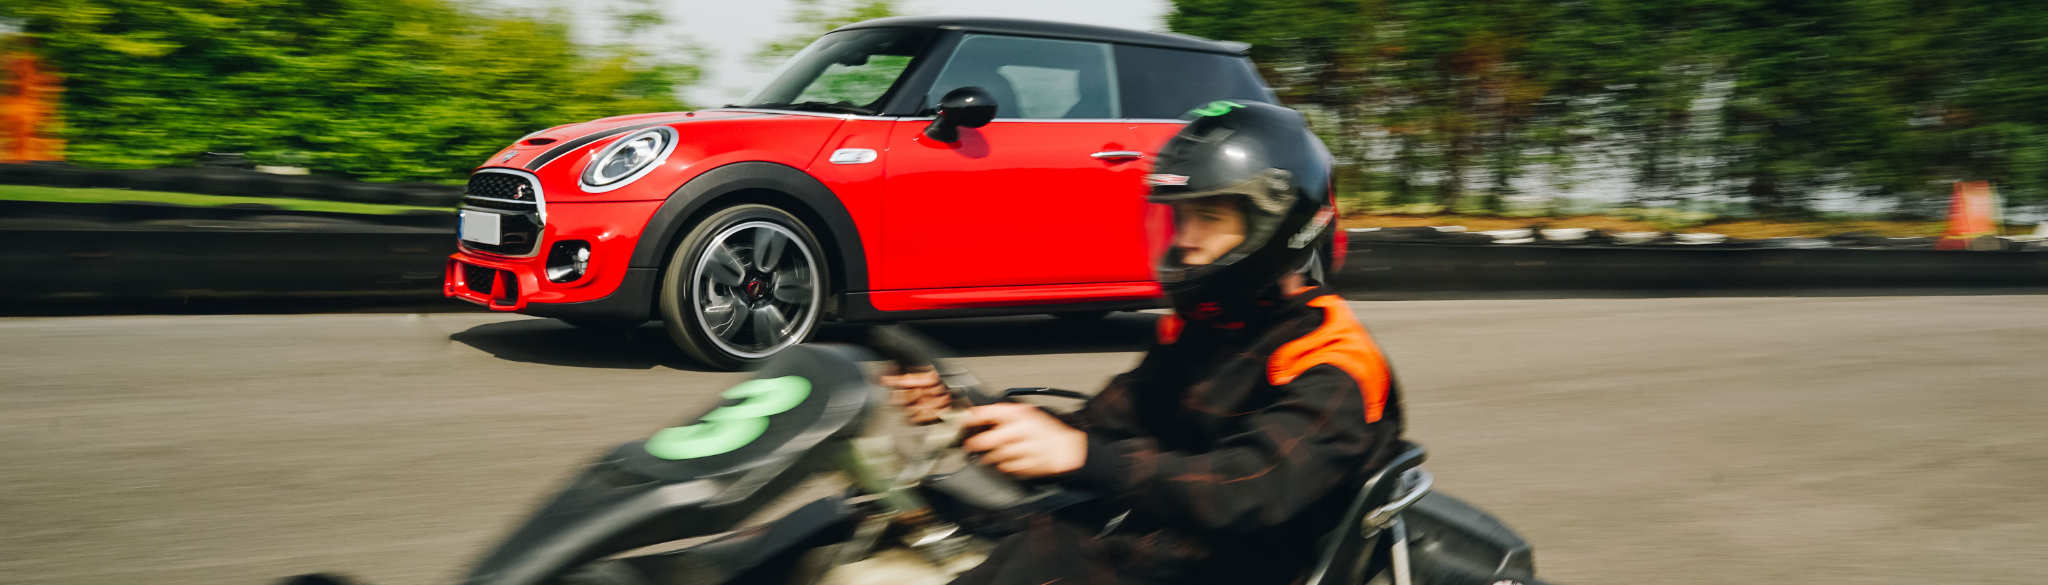 The MINI Cooper S   A Go Kart For The Road